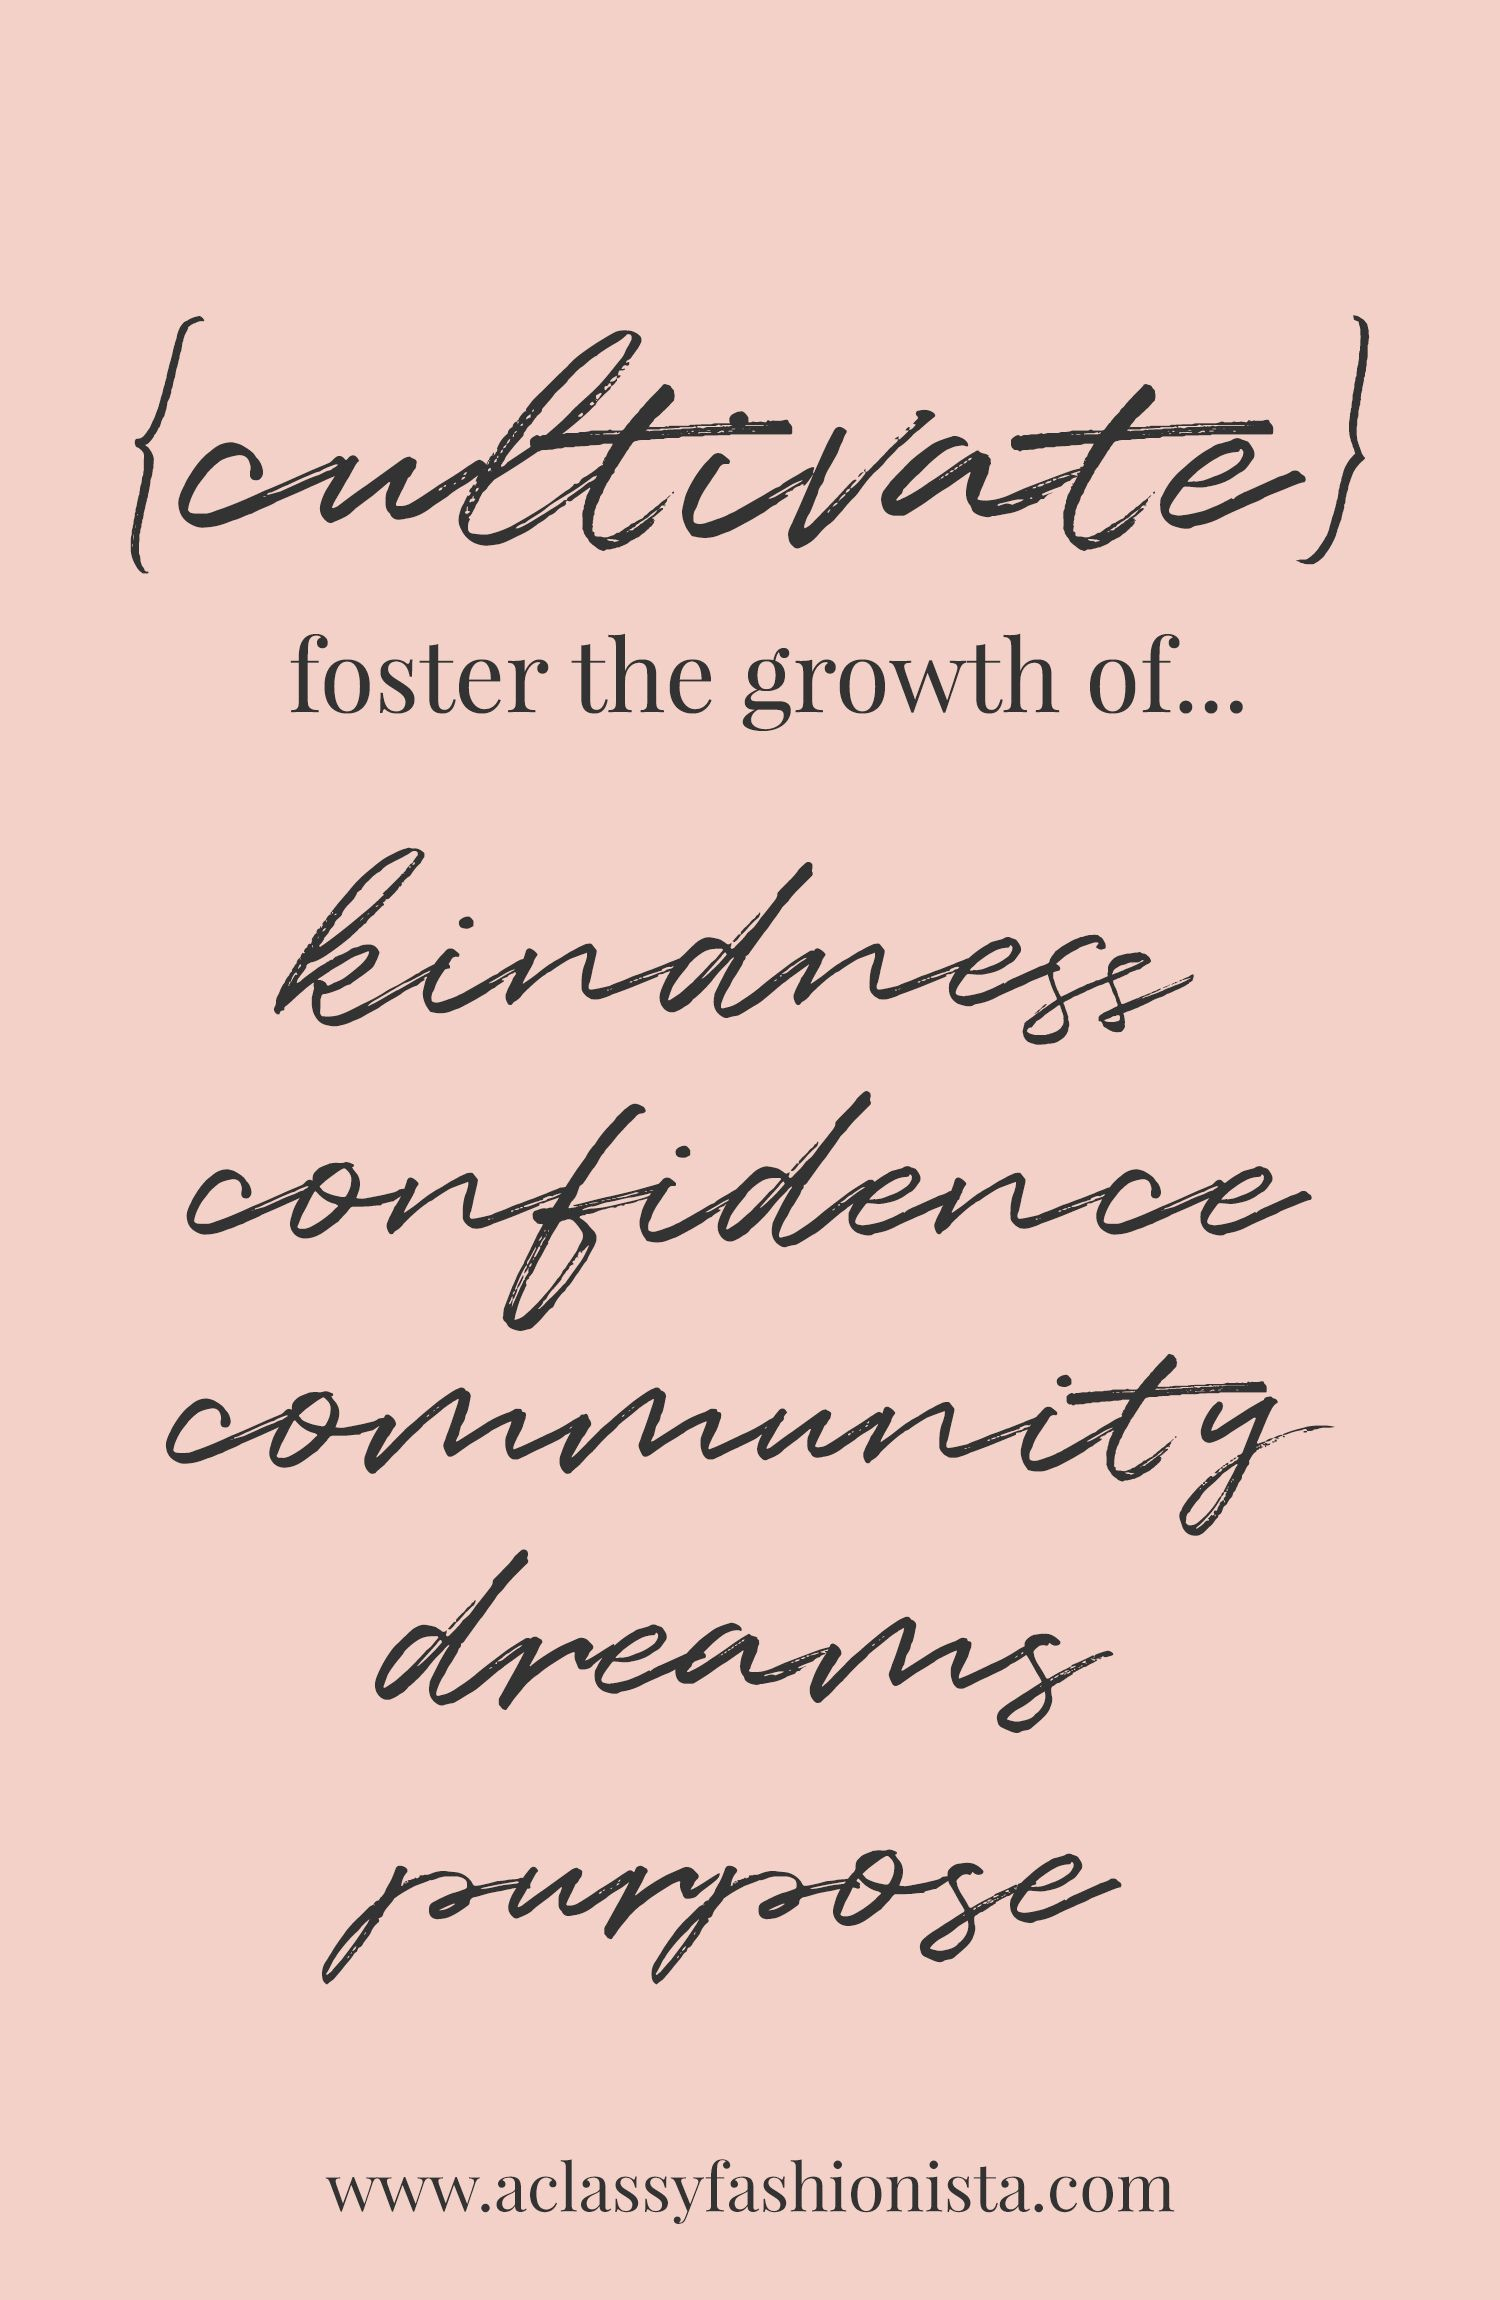 CULTIVATE // MY WORD TO LIVE BY IN 2018